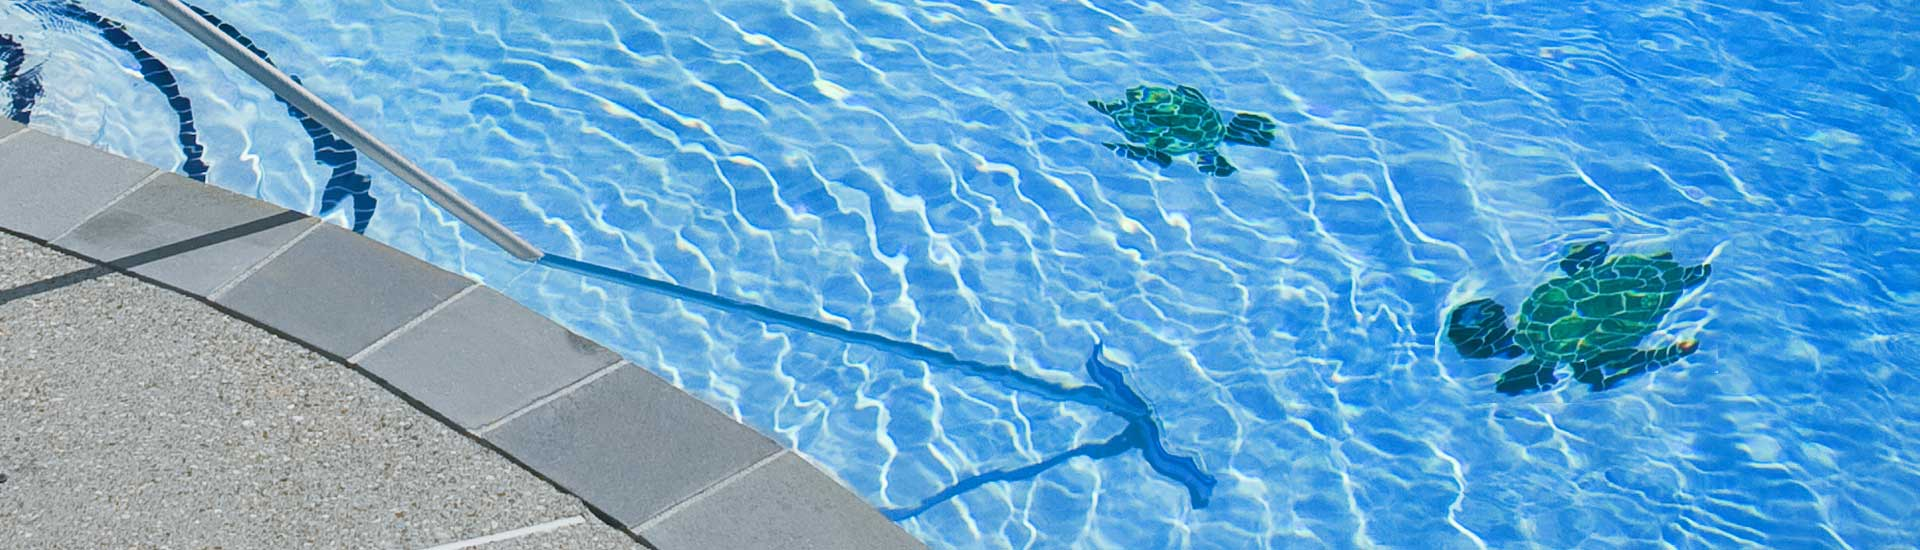 elata-swimming-pool-service-pool-maintenance